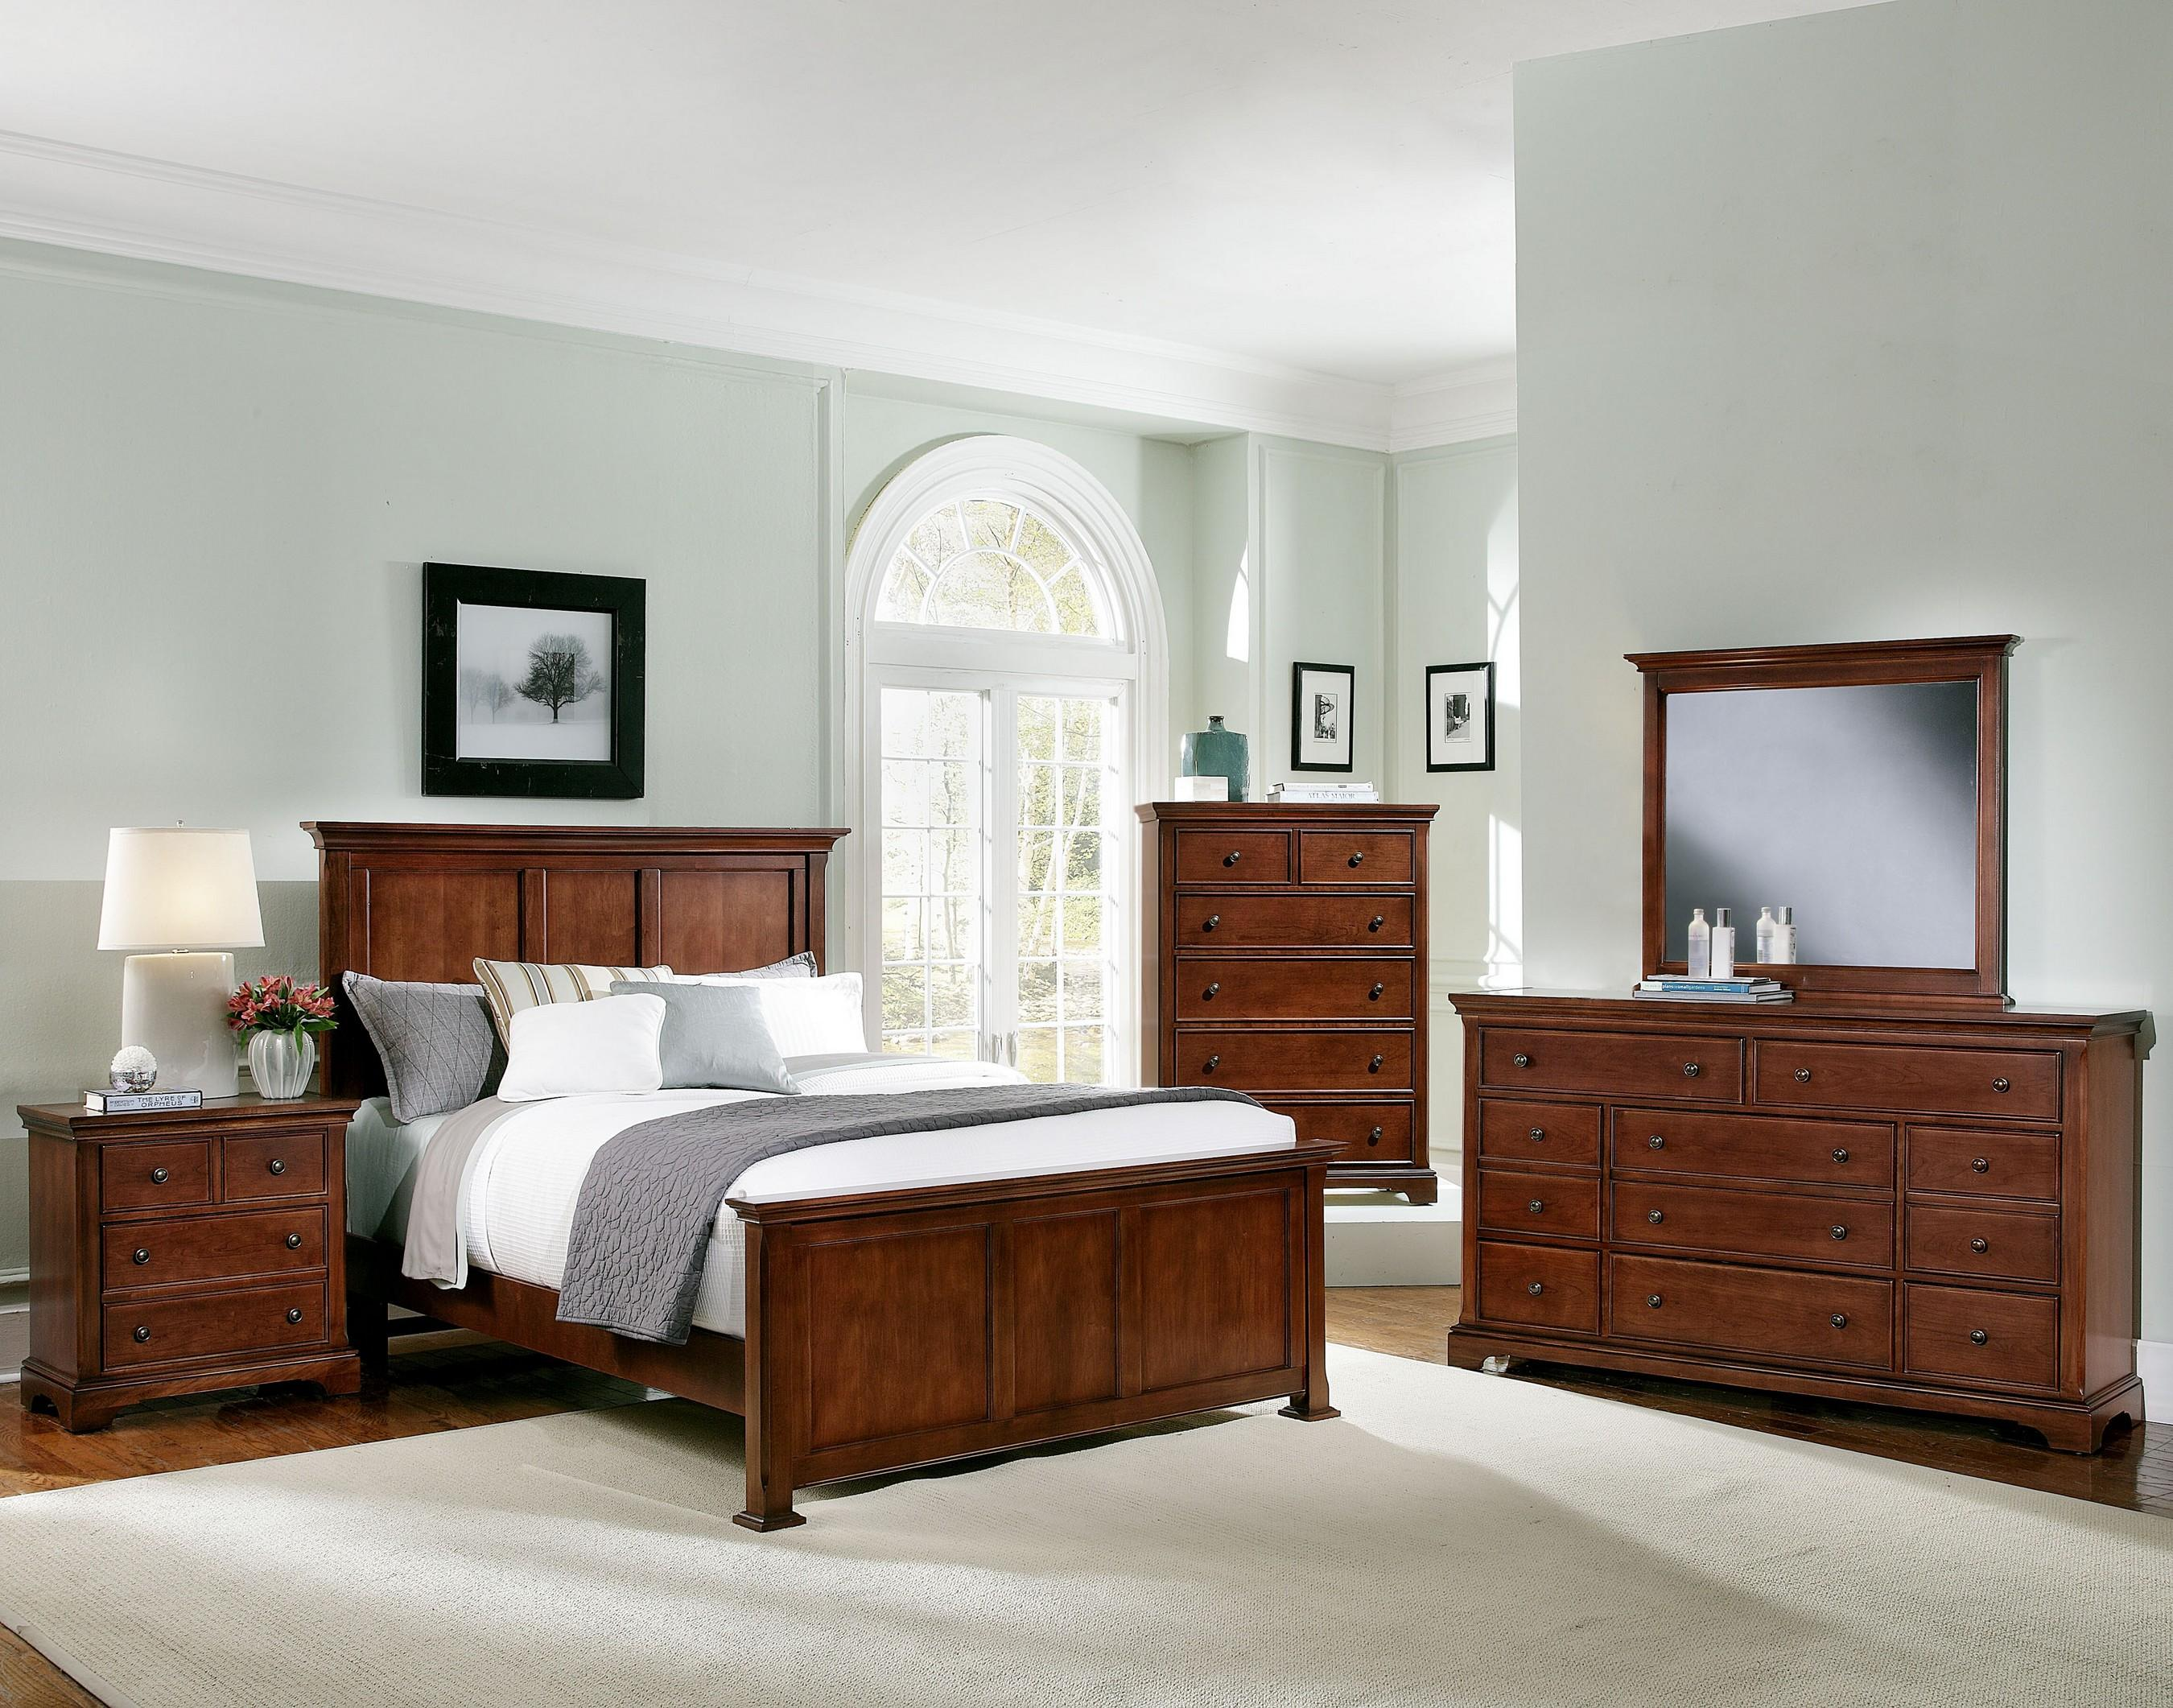 Vaughan Bassett Forsyth California King Bedroom Group - Item Number: BB77 CK Bedroom Group 2